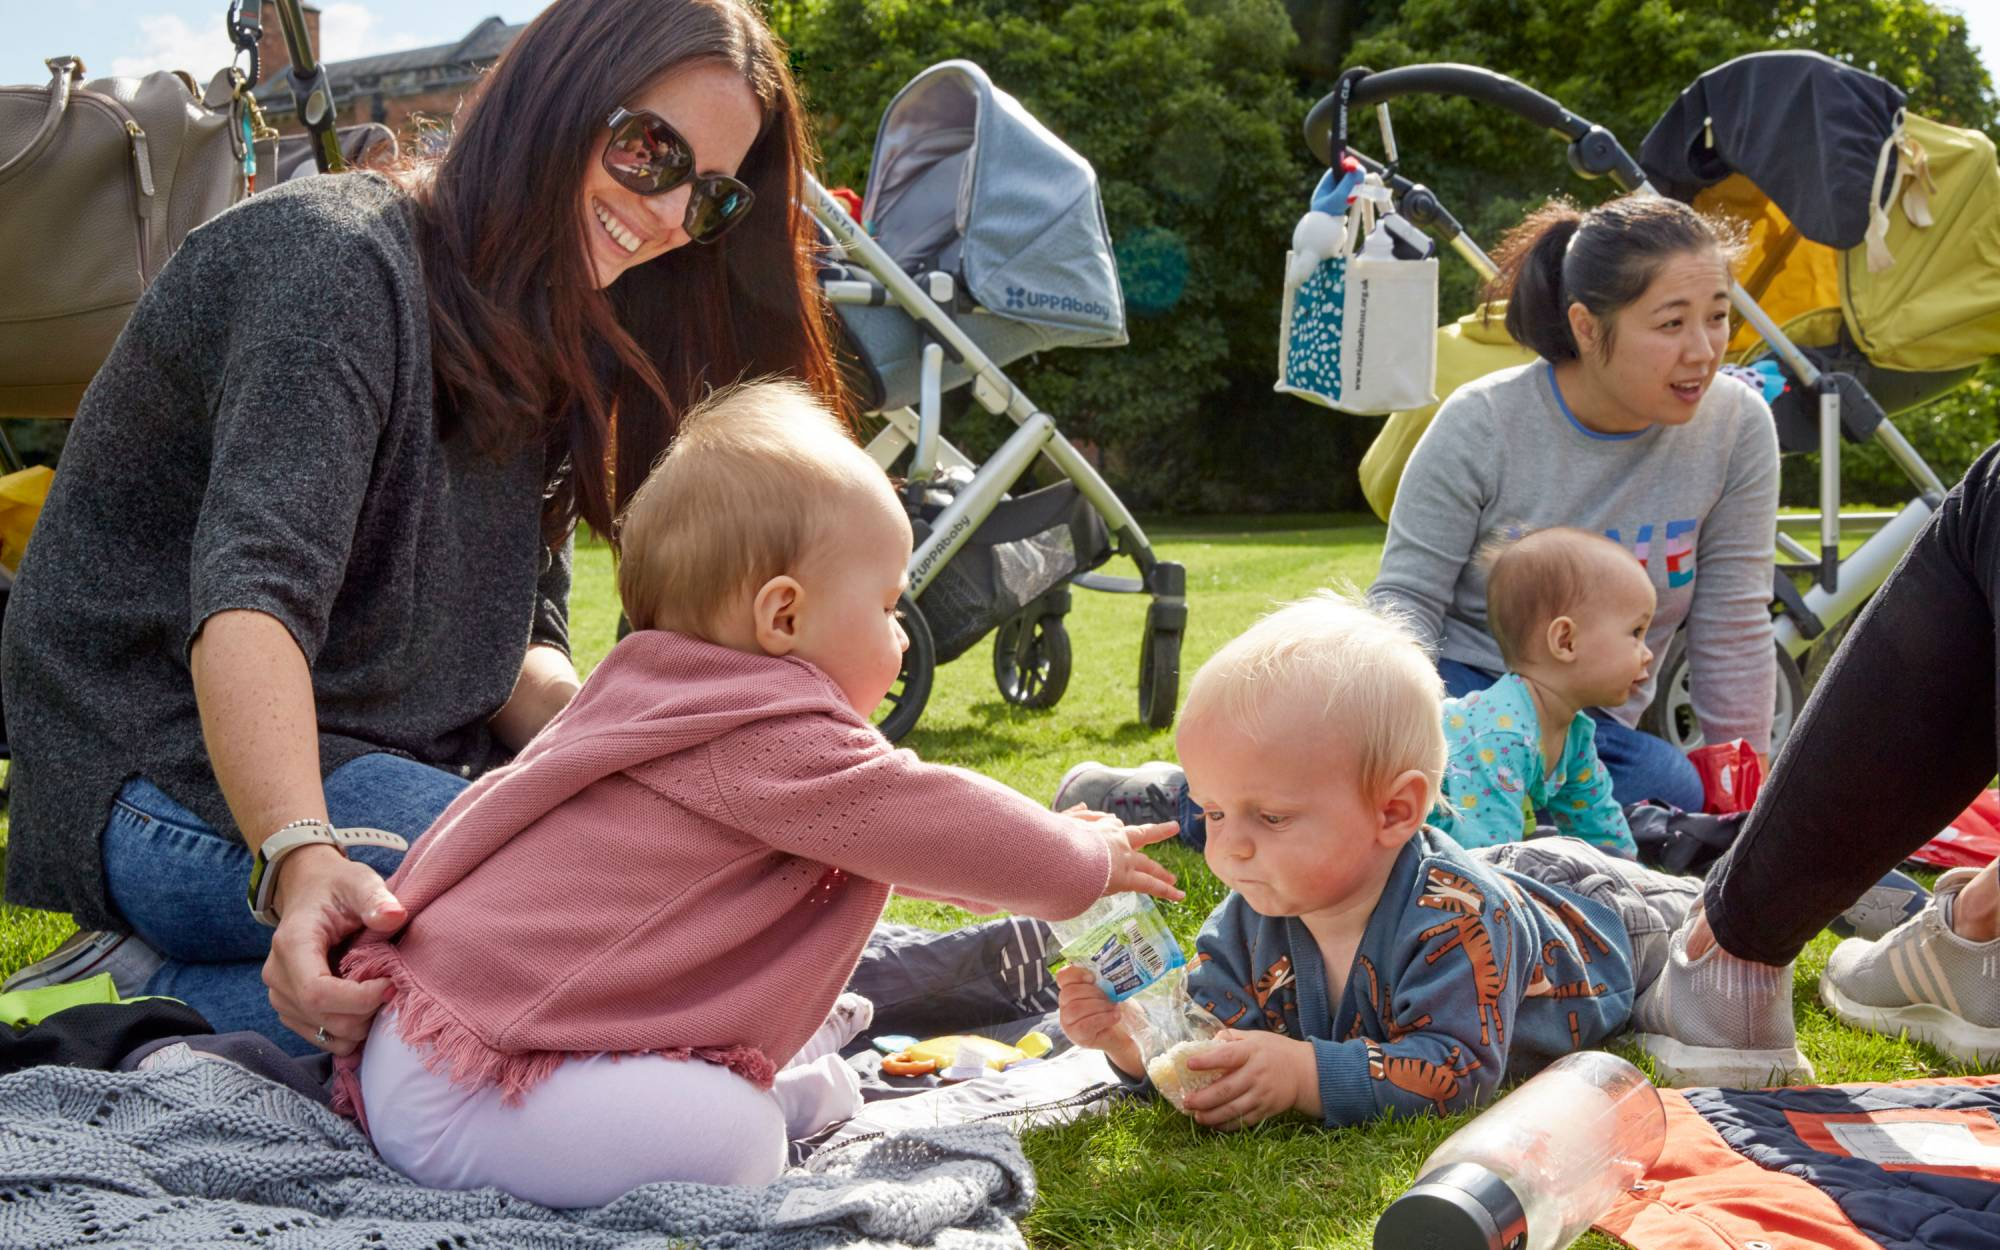 A family with young children enjoying a picnic